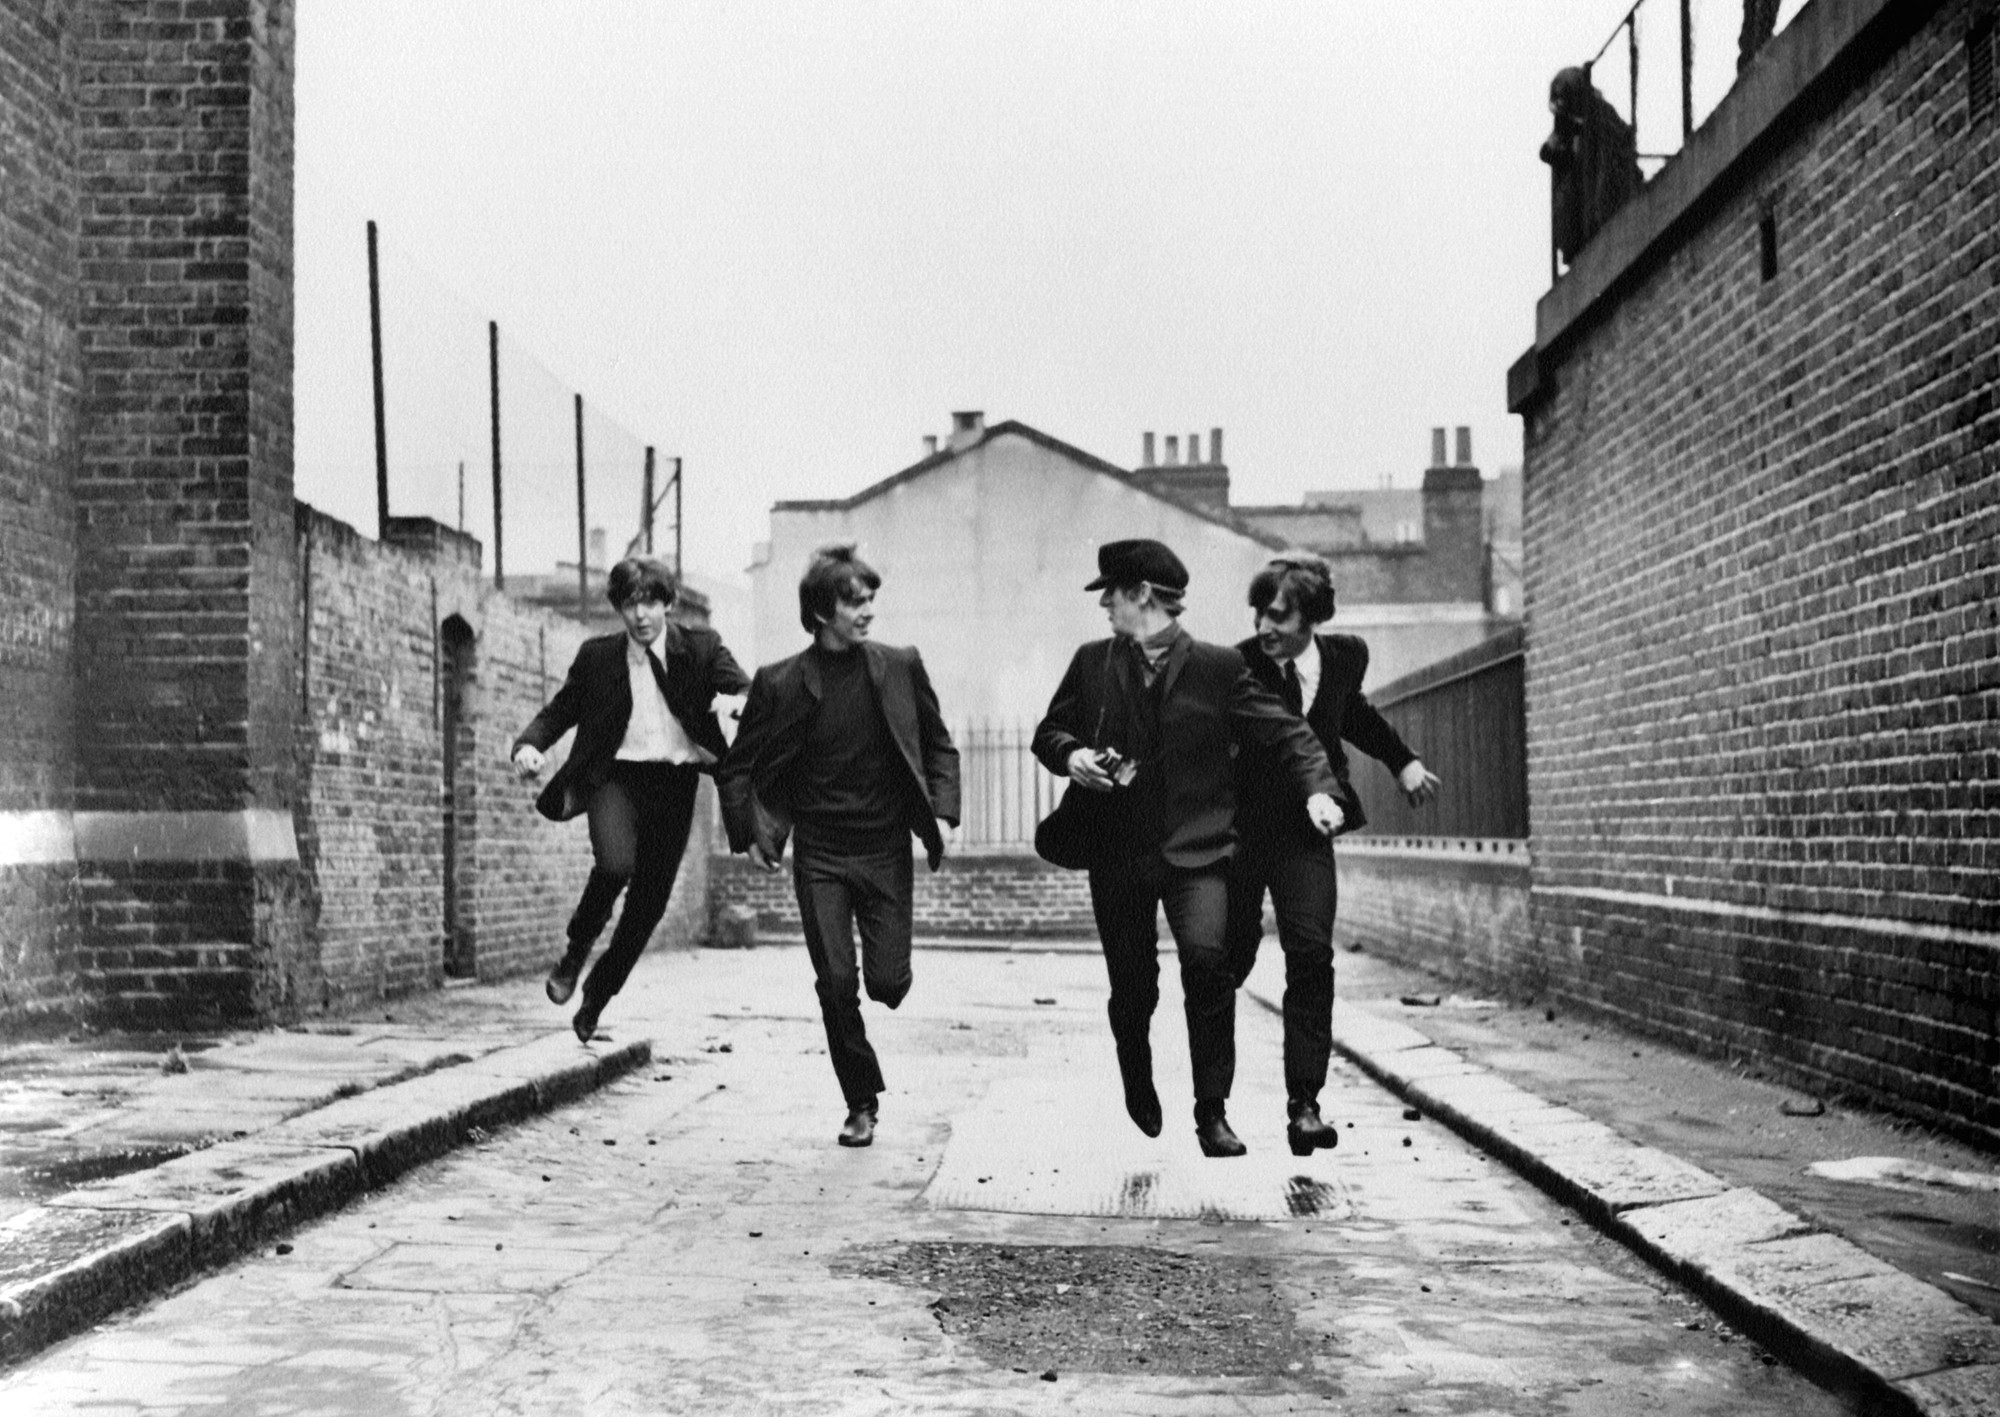 A Hard Day's Night. 1964. Great Britain. Directed by Richard Lester